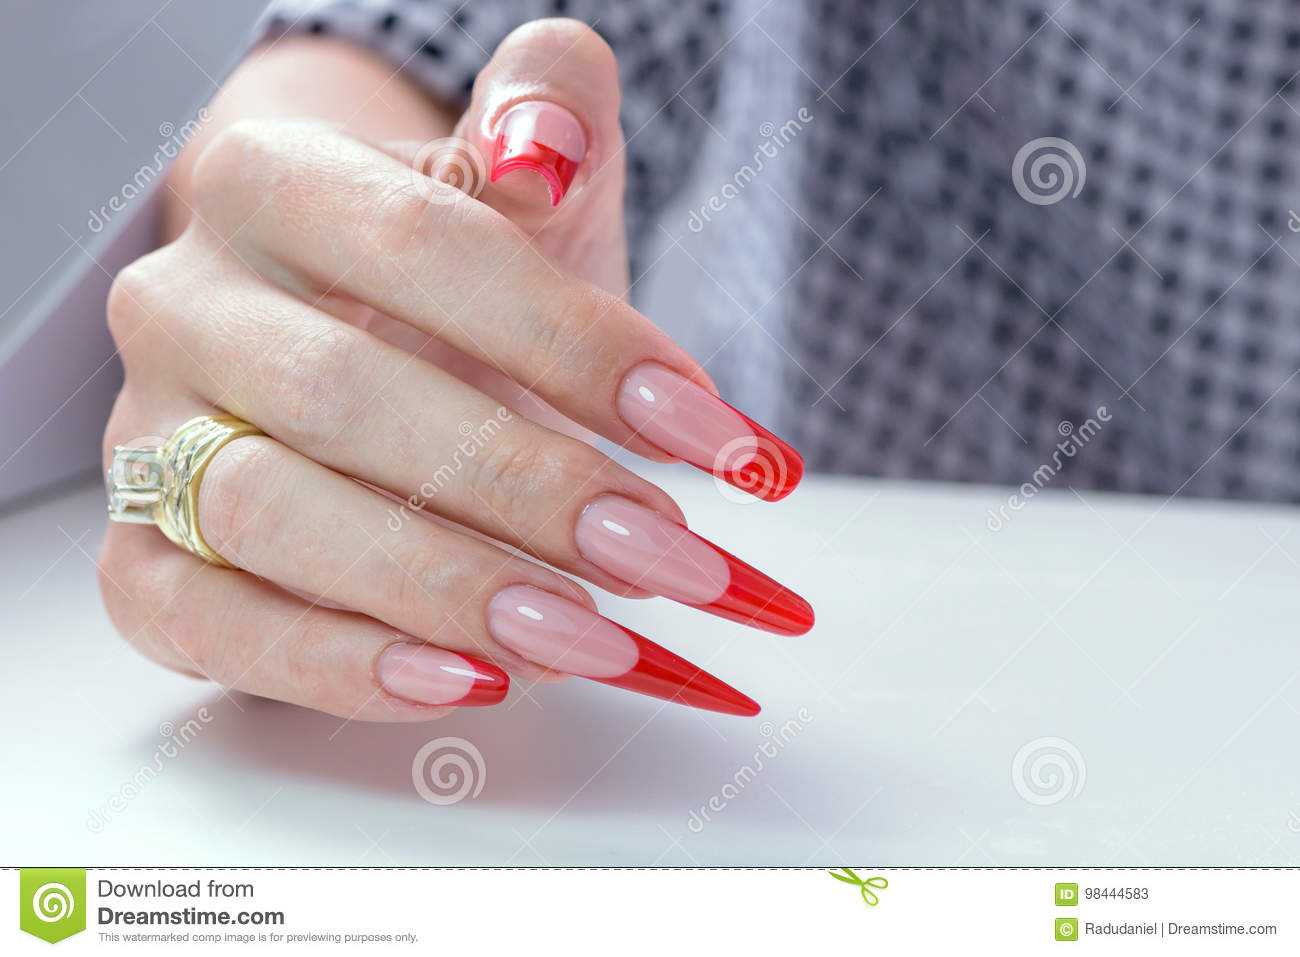 Download Nail Polish Art Manicure Modern Style Red Black Gradient Beauty